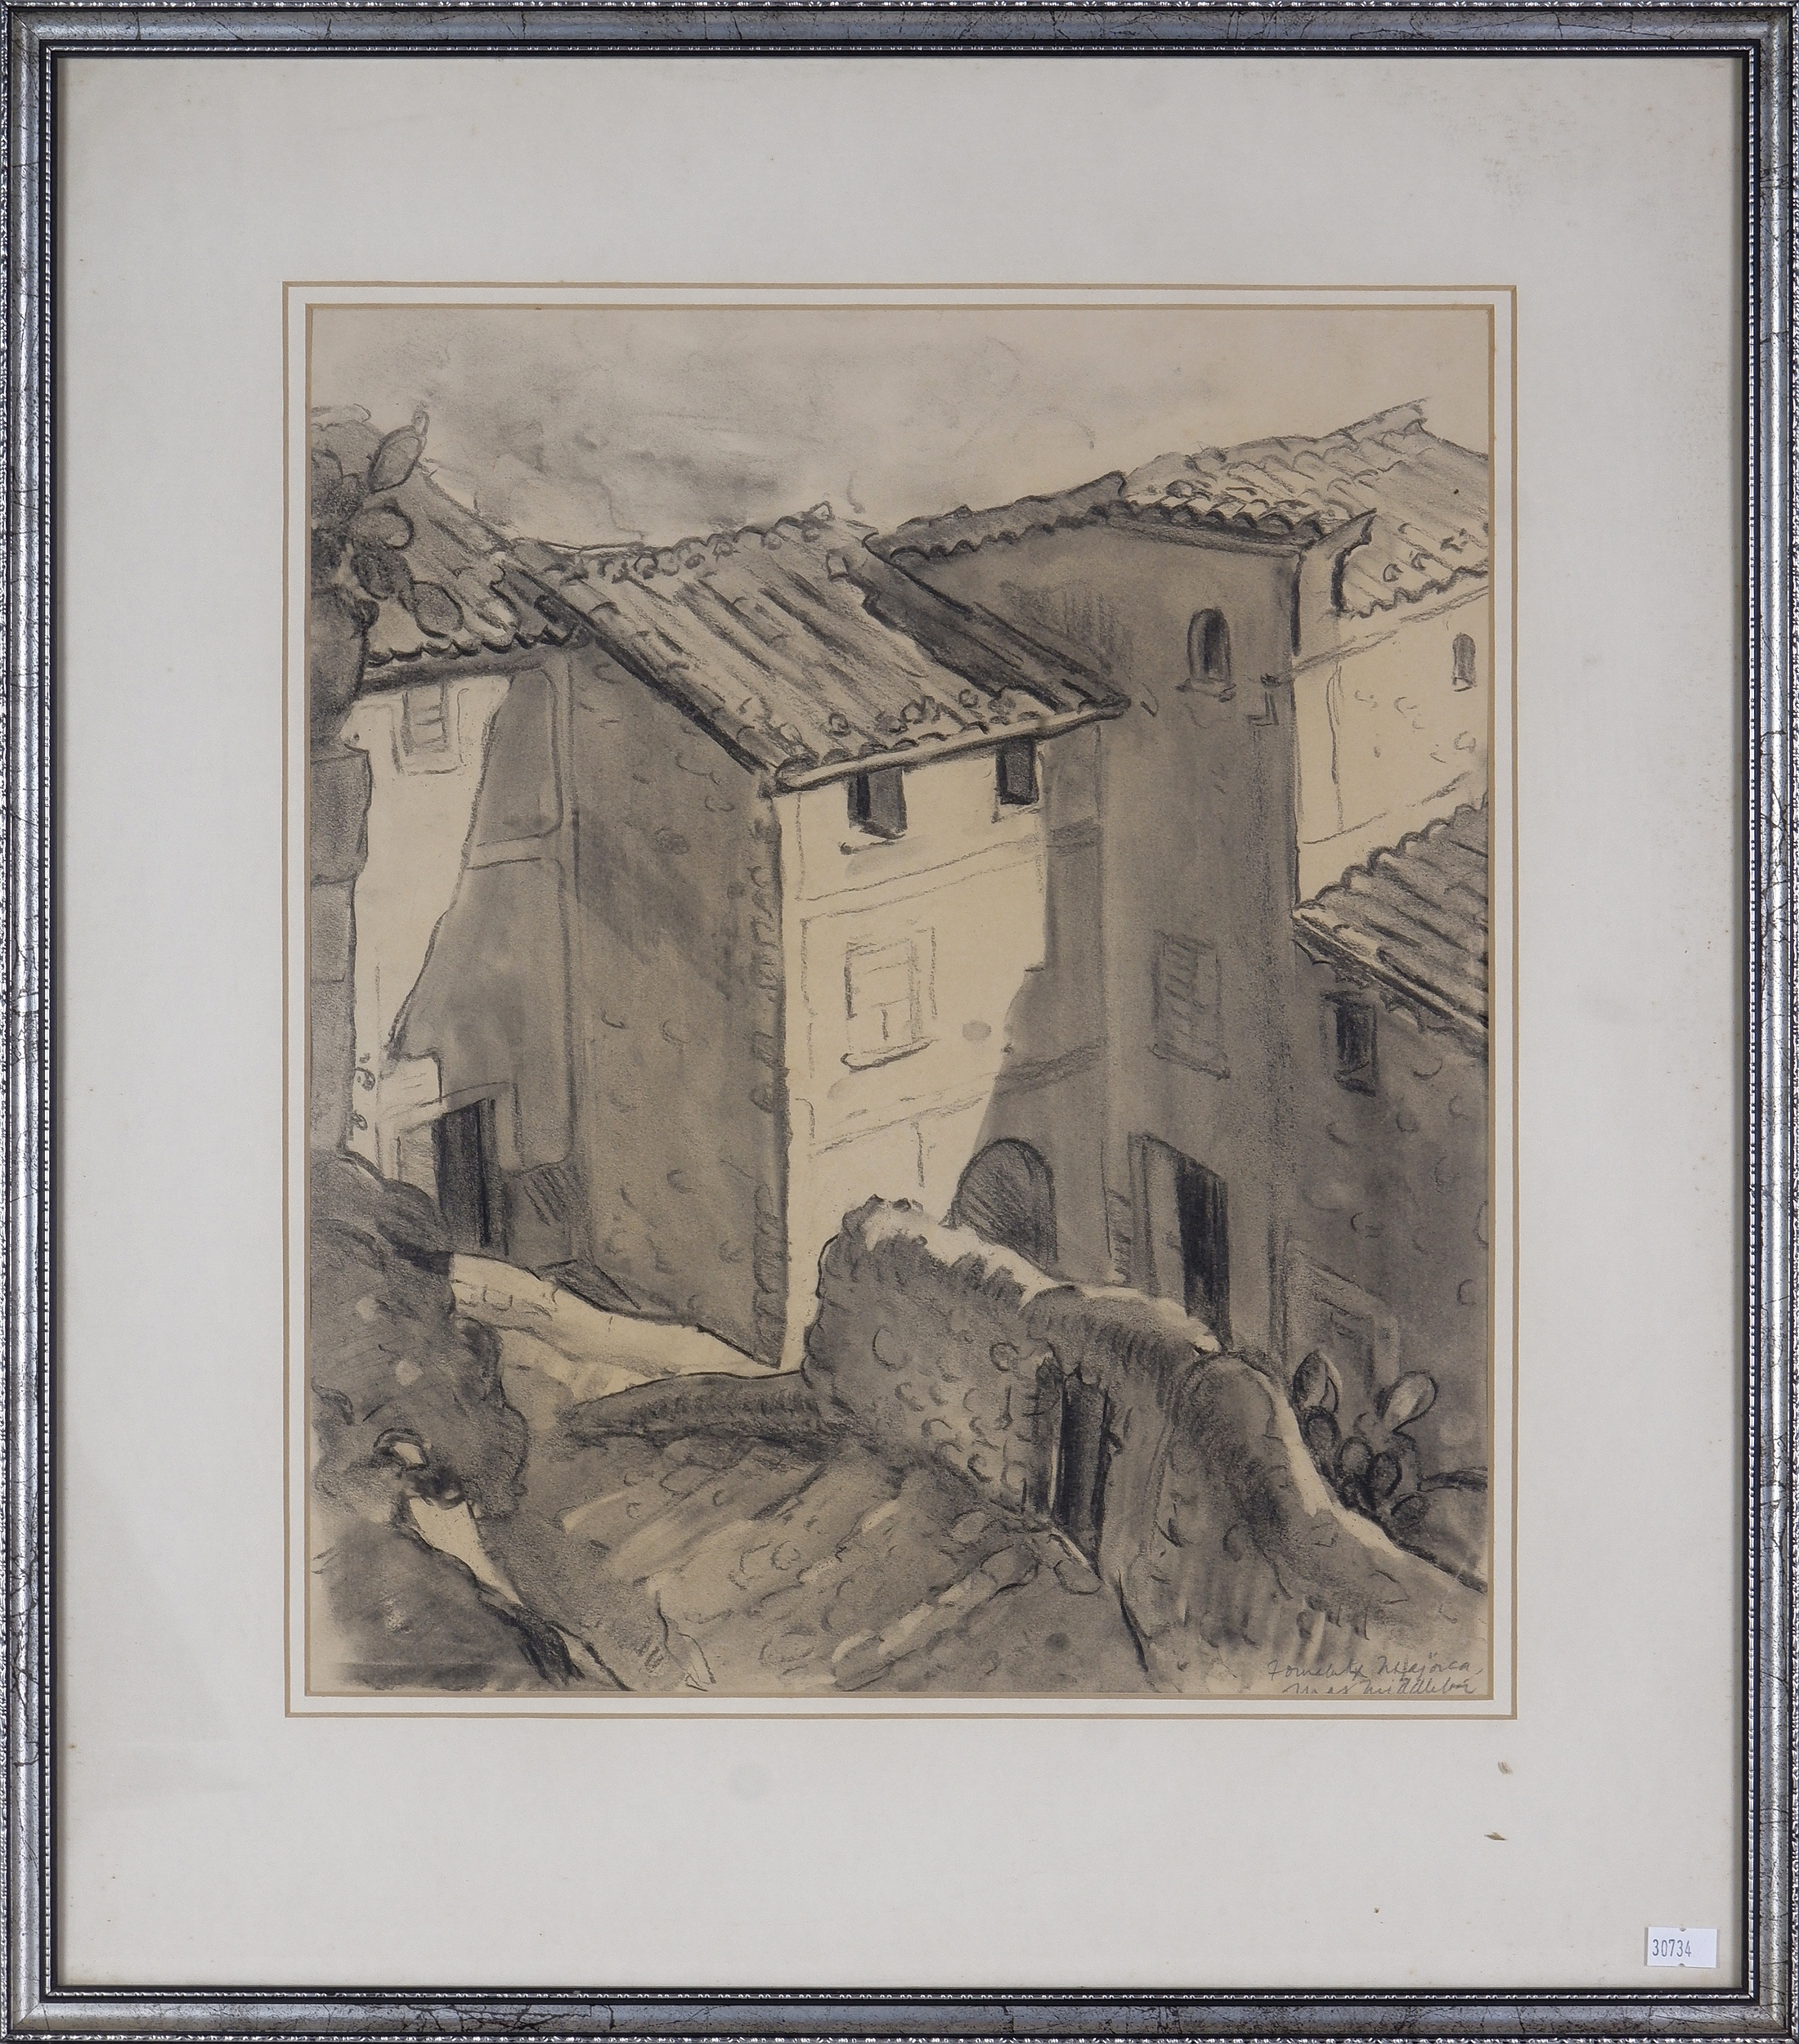 'Max Middleton (1922-2013), Majorca, Charcoal on Paper'